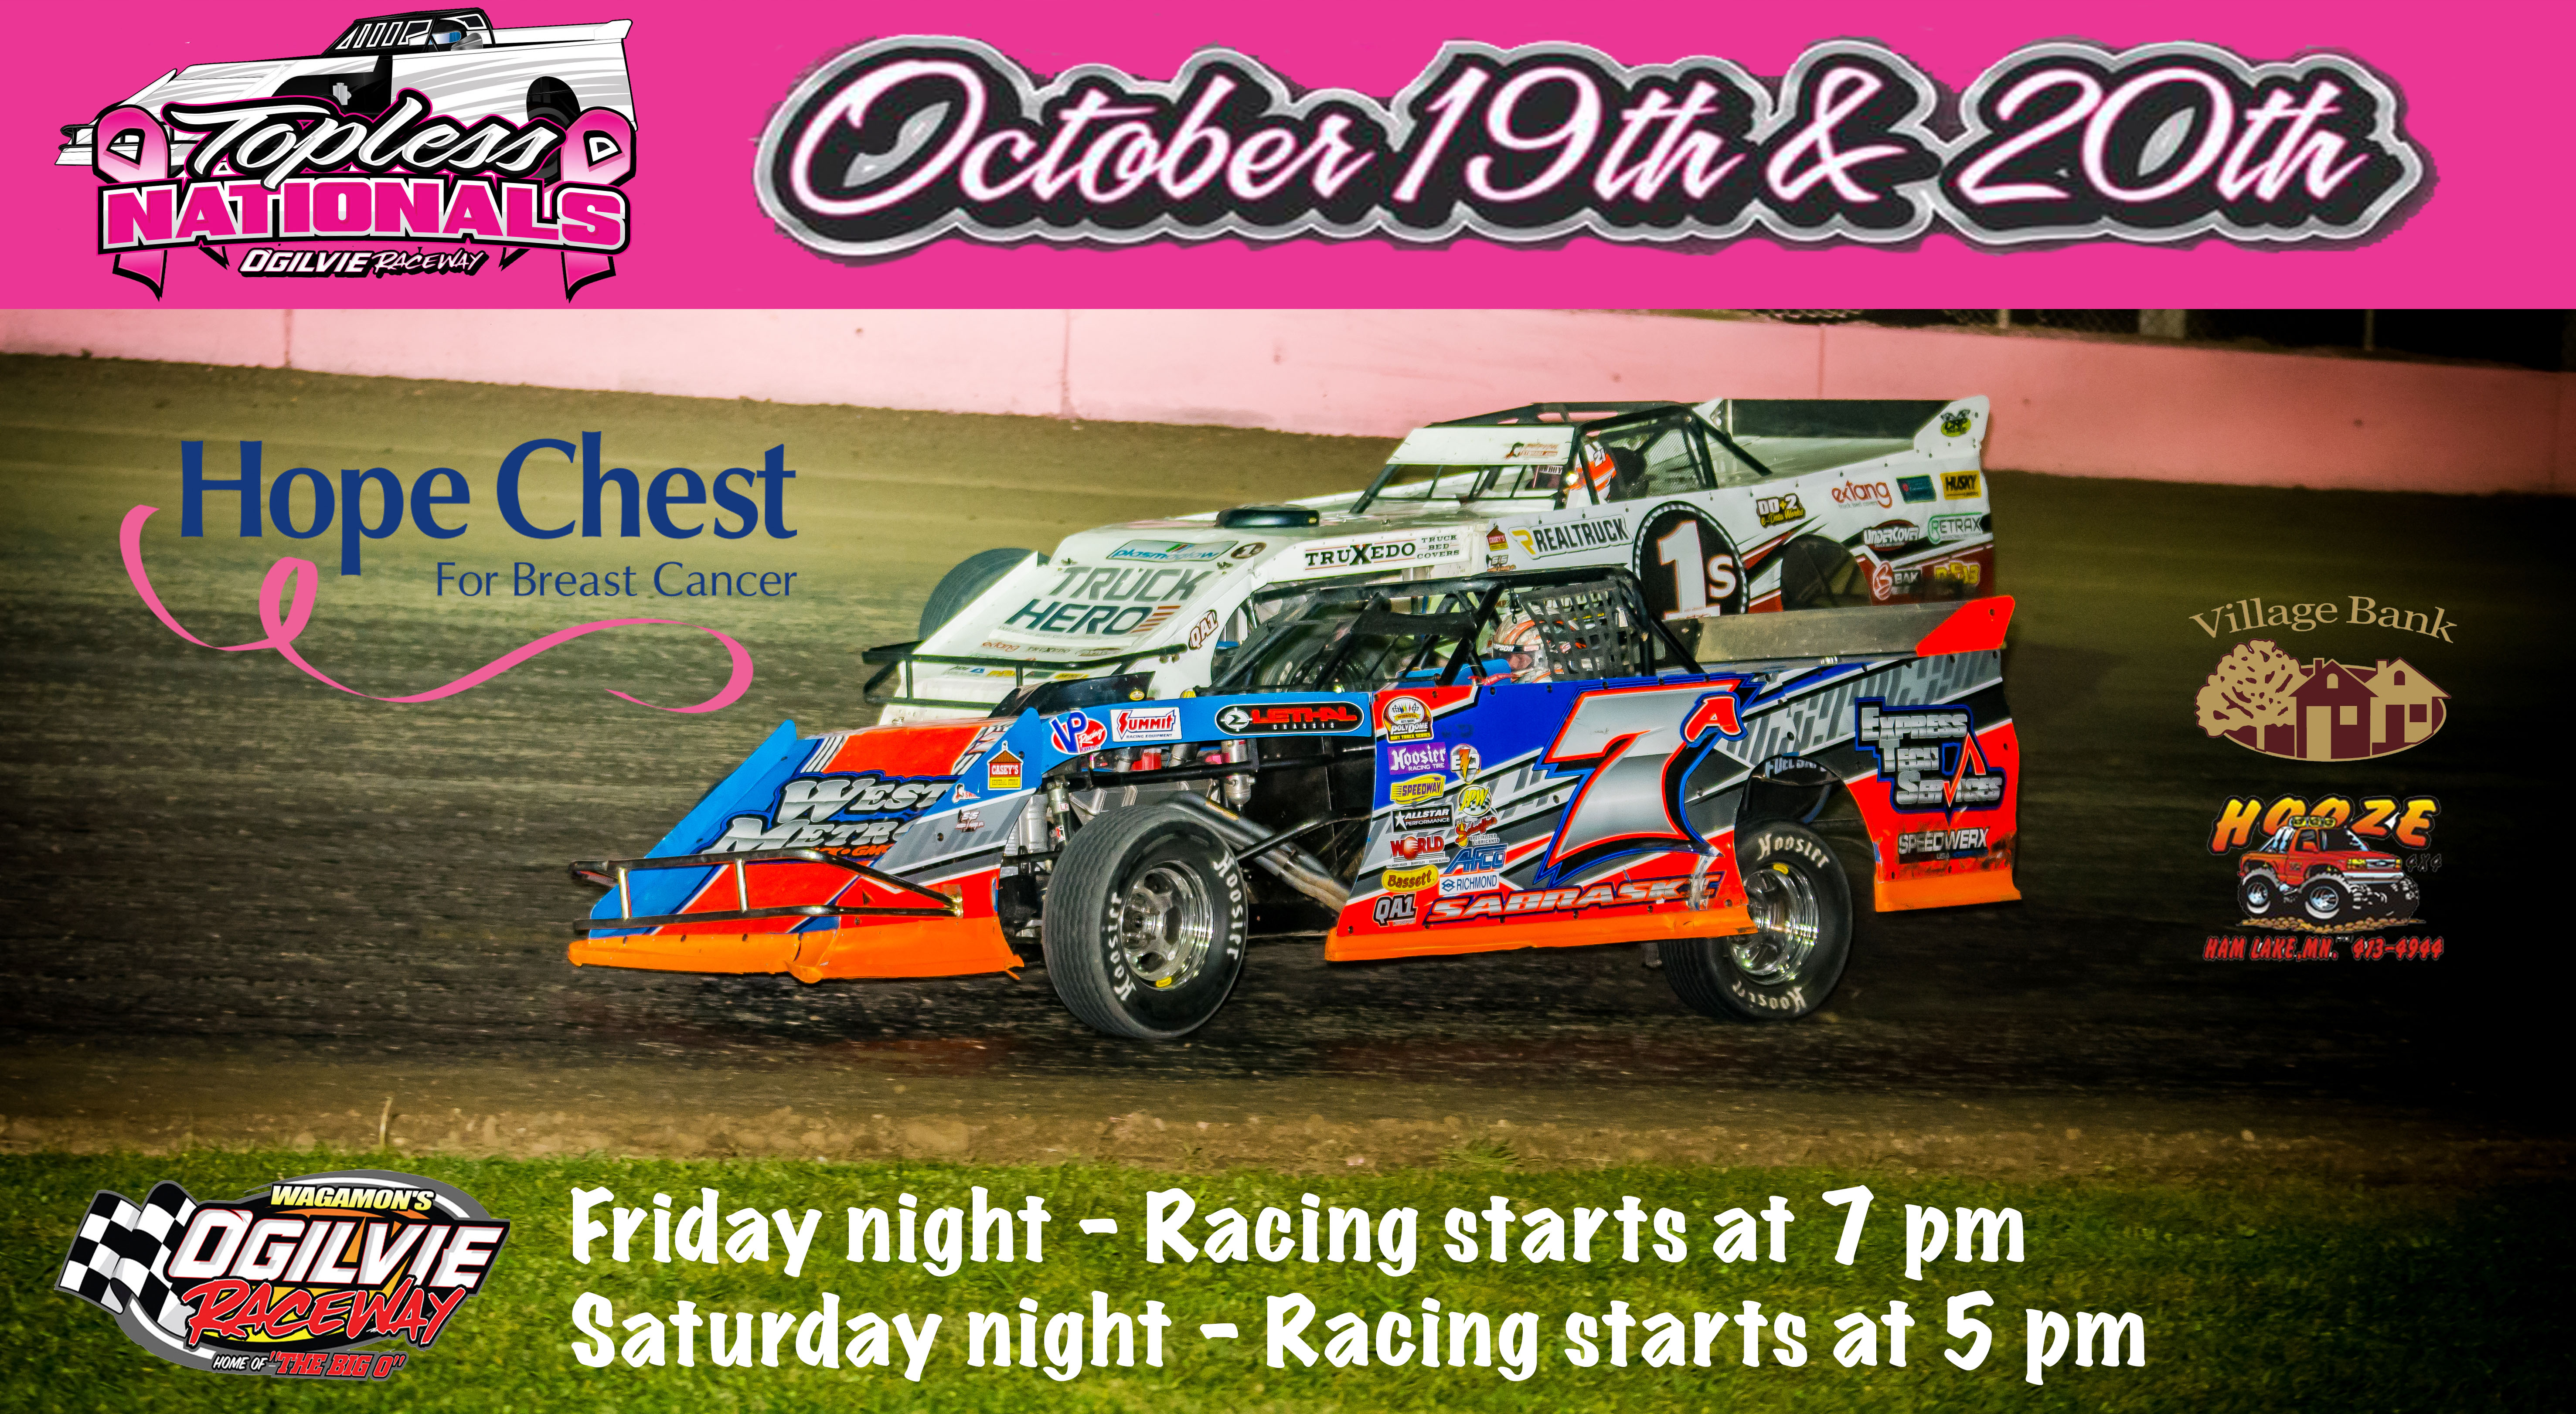 Topless Nationals – Friday and Saturday, October 19th and 20th